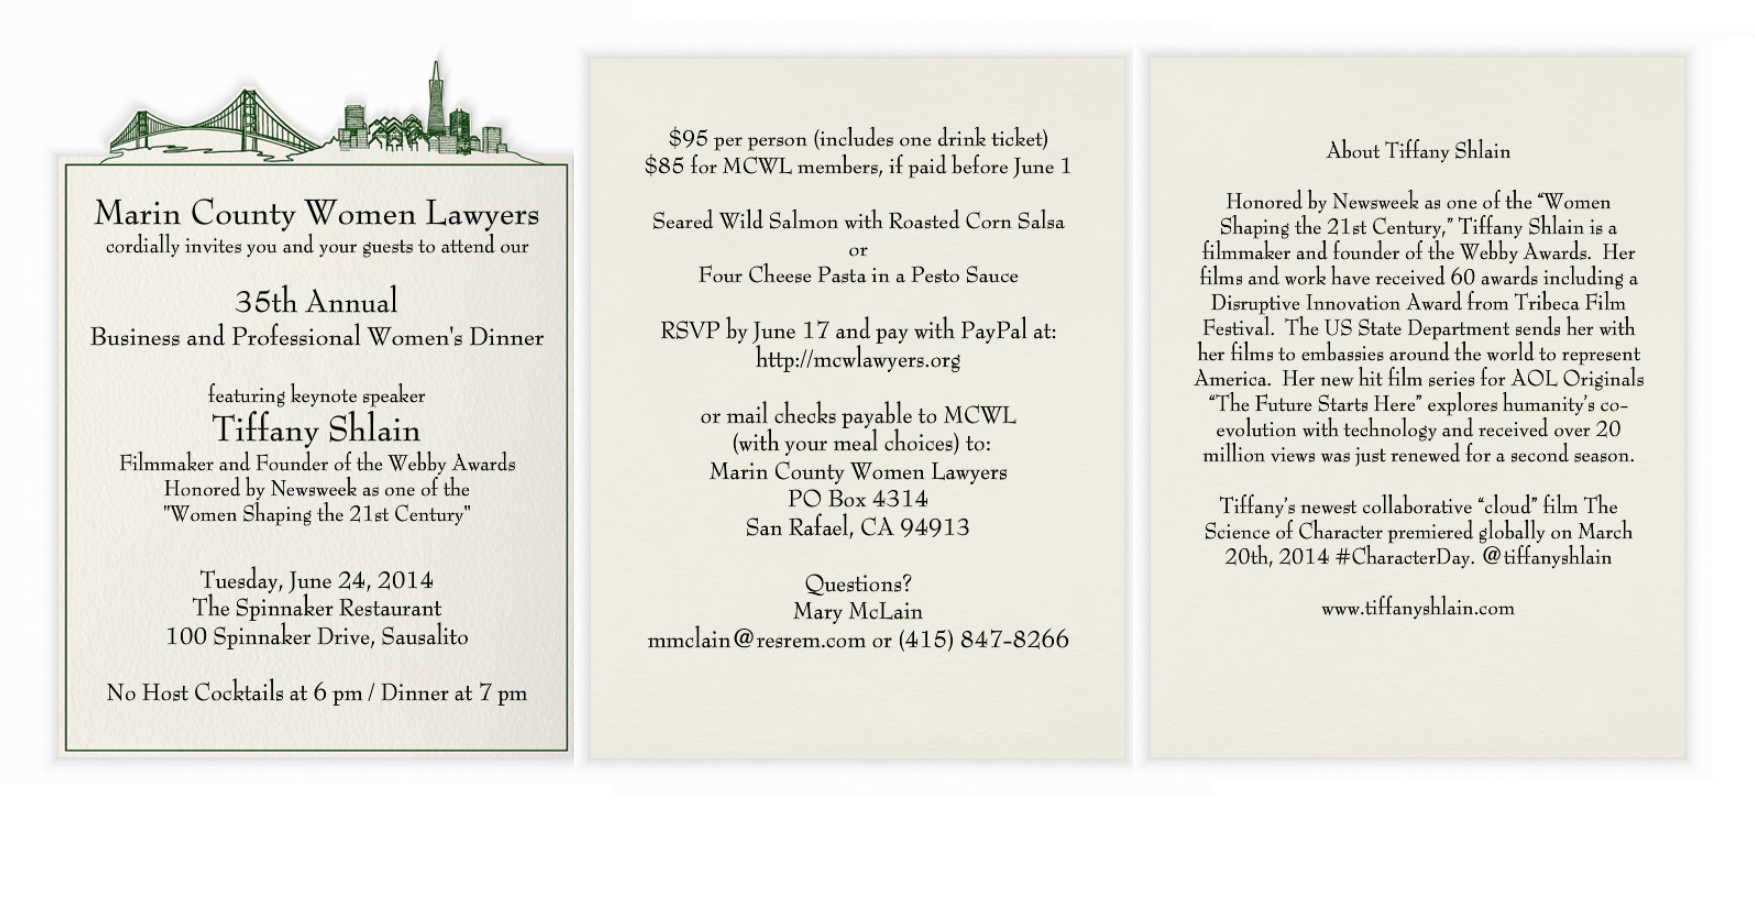 th annual business and professional women s dinner marin dinner invitation